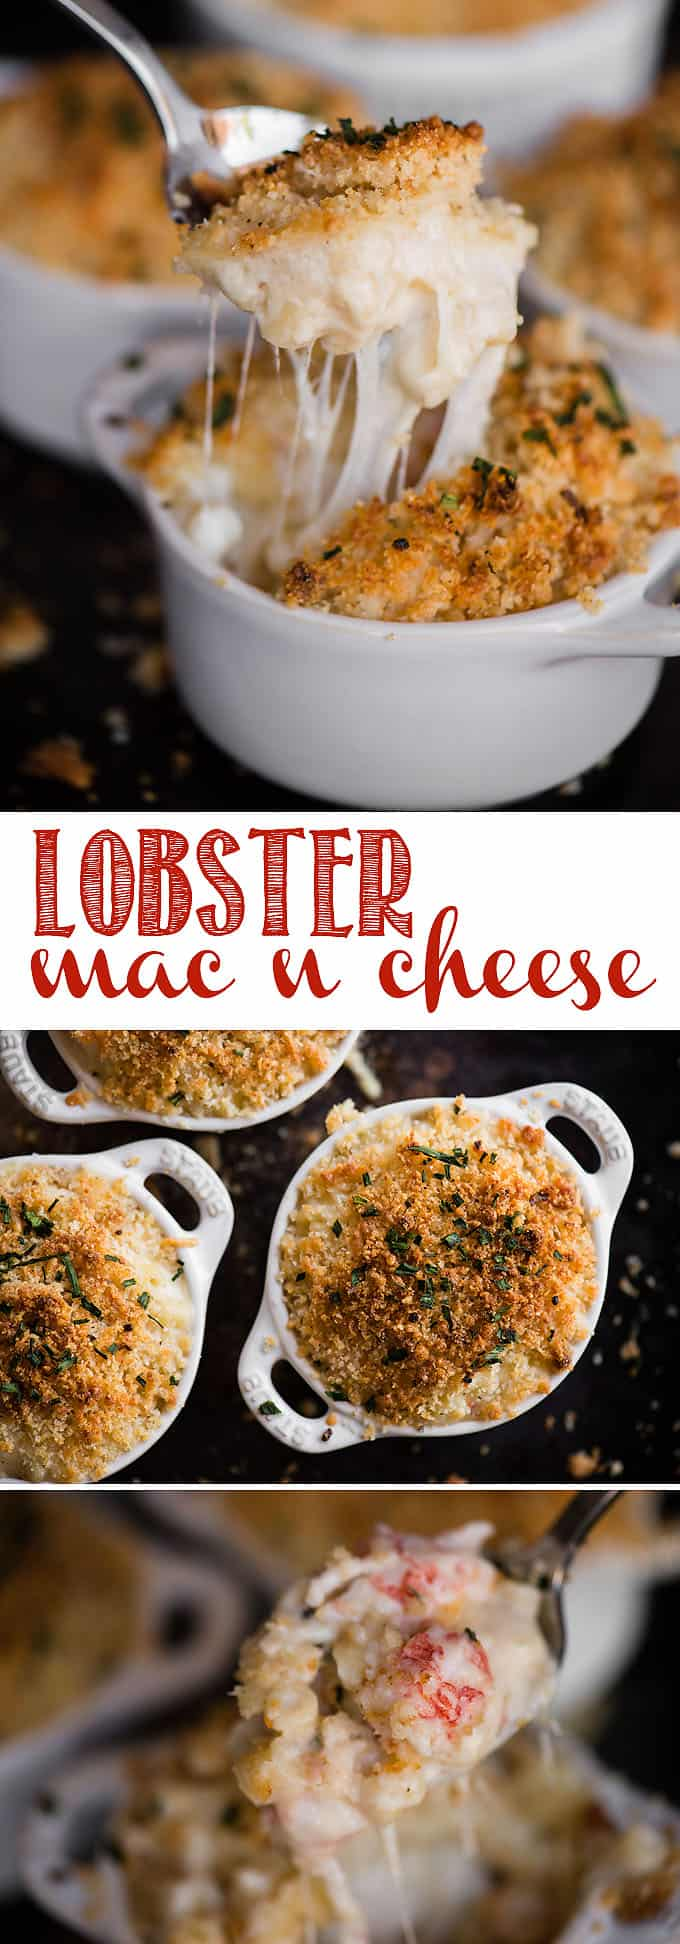 Lobster Mac and Cheese, with succulent pieces of wild caught fresh water lobster, is possibly the best macaroni and cheese recipe you'll find! #lobstermacncheese #lobster #langostino #macncheese #cheddar #gruyere #lobstermacandcheese #easylobstermacandcheese #lobstermacandcheeserecipe #gruyerelobstermacandcheese #bestlobstermacandcheese #bakedlobstermacandcheese #creamylobstermacandcheese